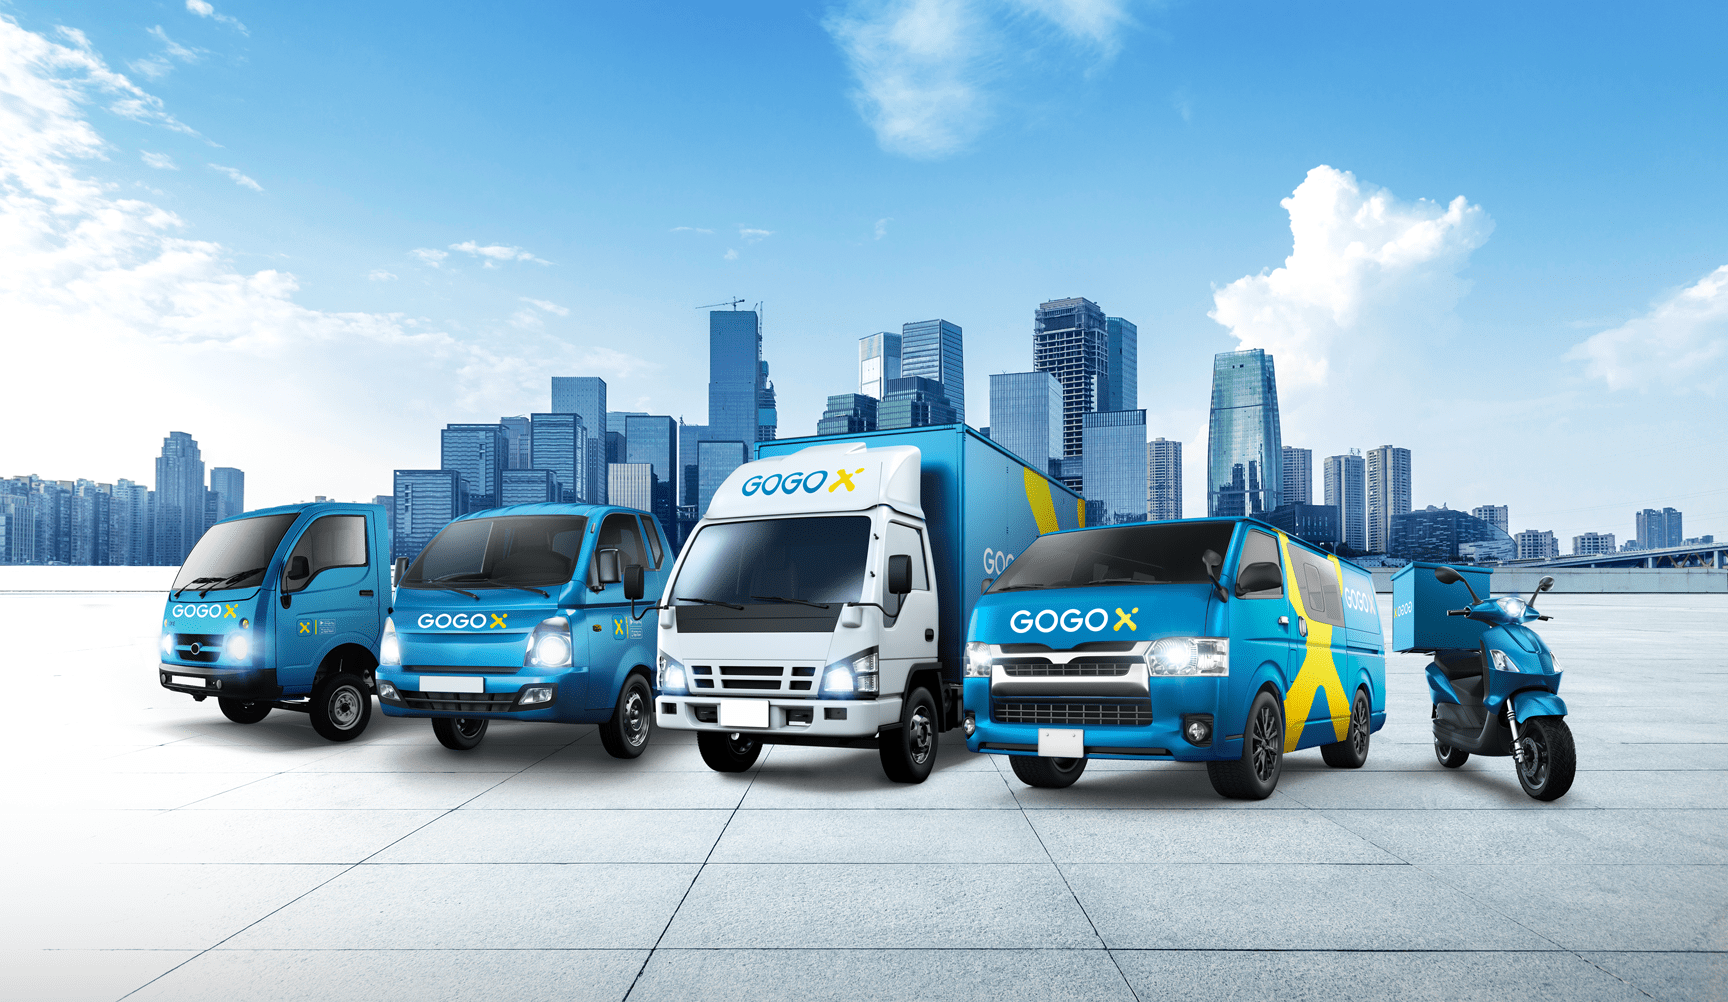 GOGOX Vehicles